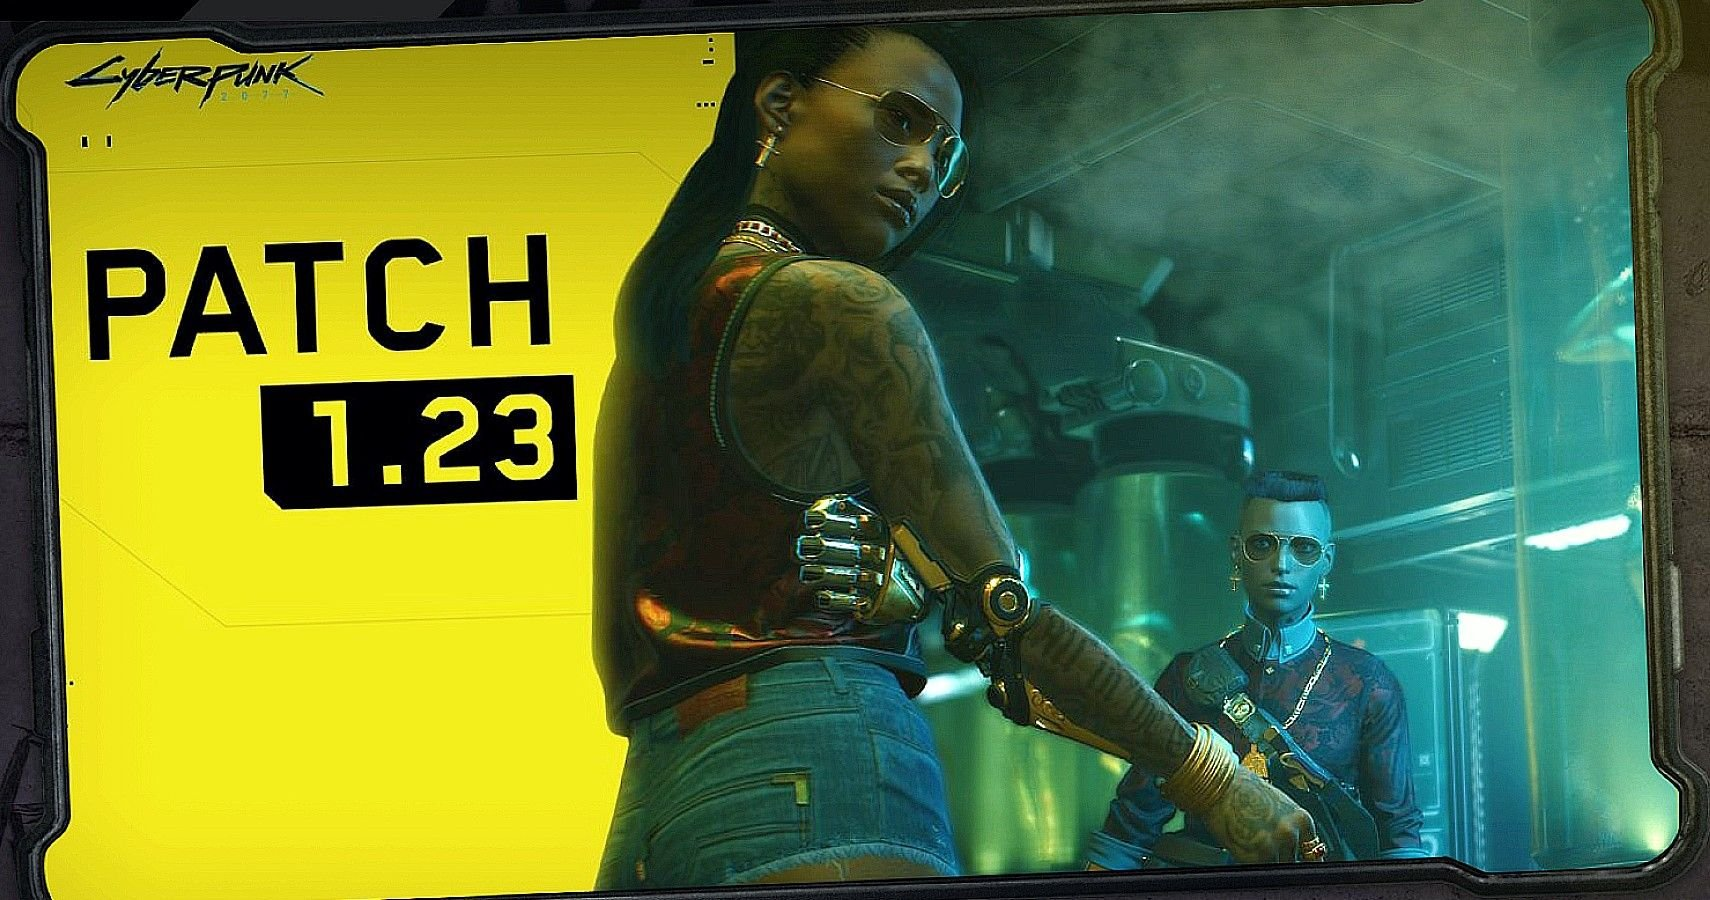 Cyberpunk 2077 Gets New Patch 1.23 Just Prior To Returning To PS Store